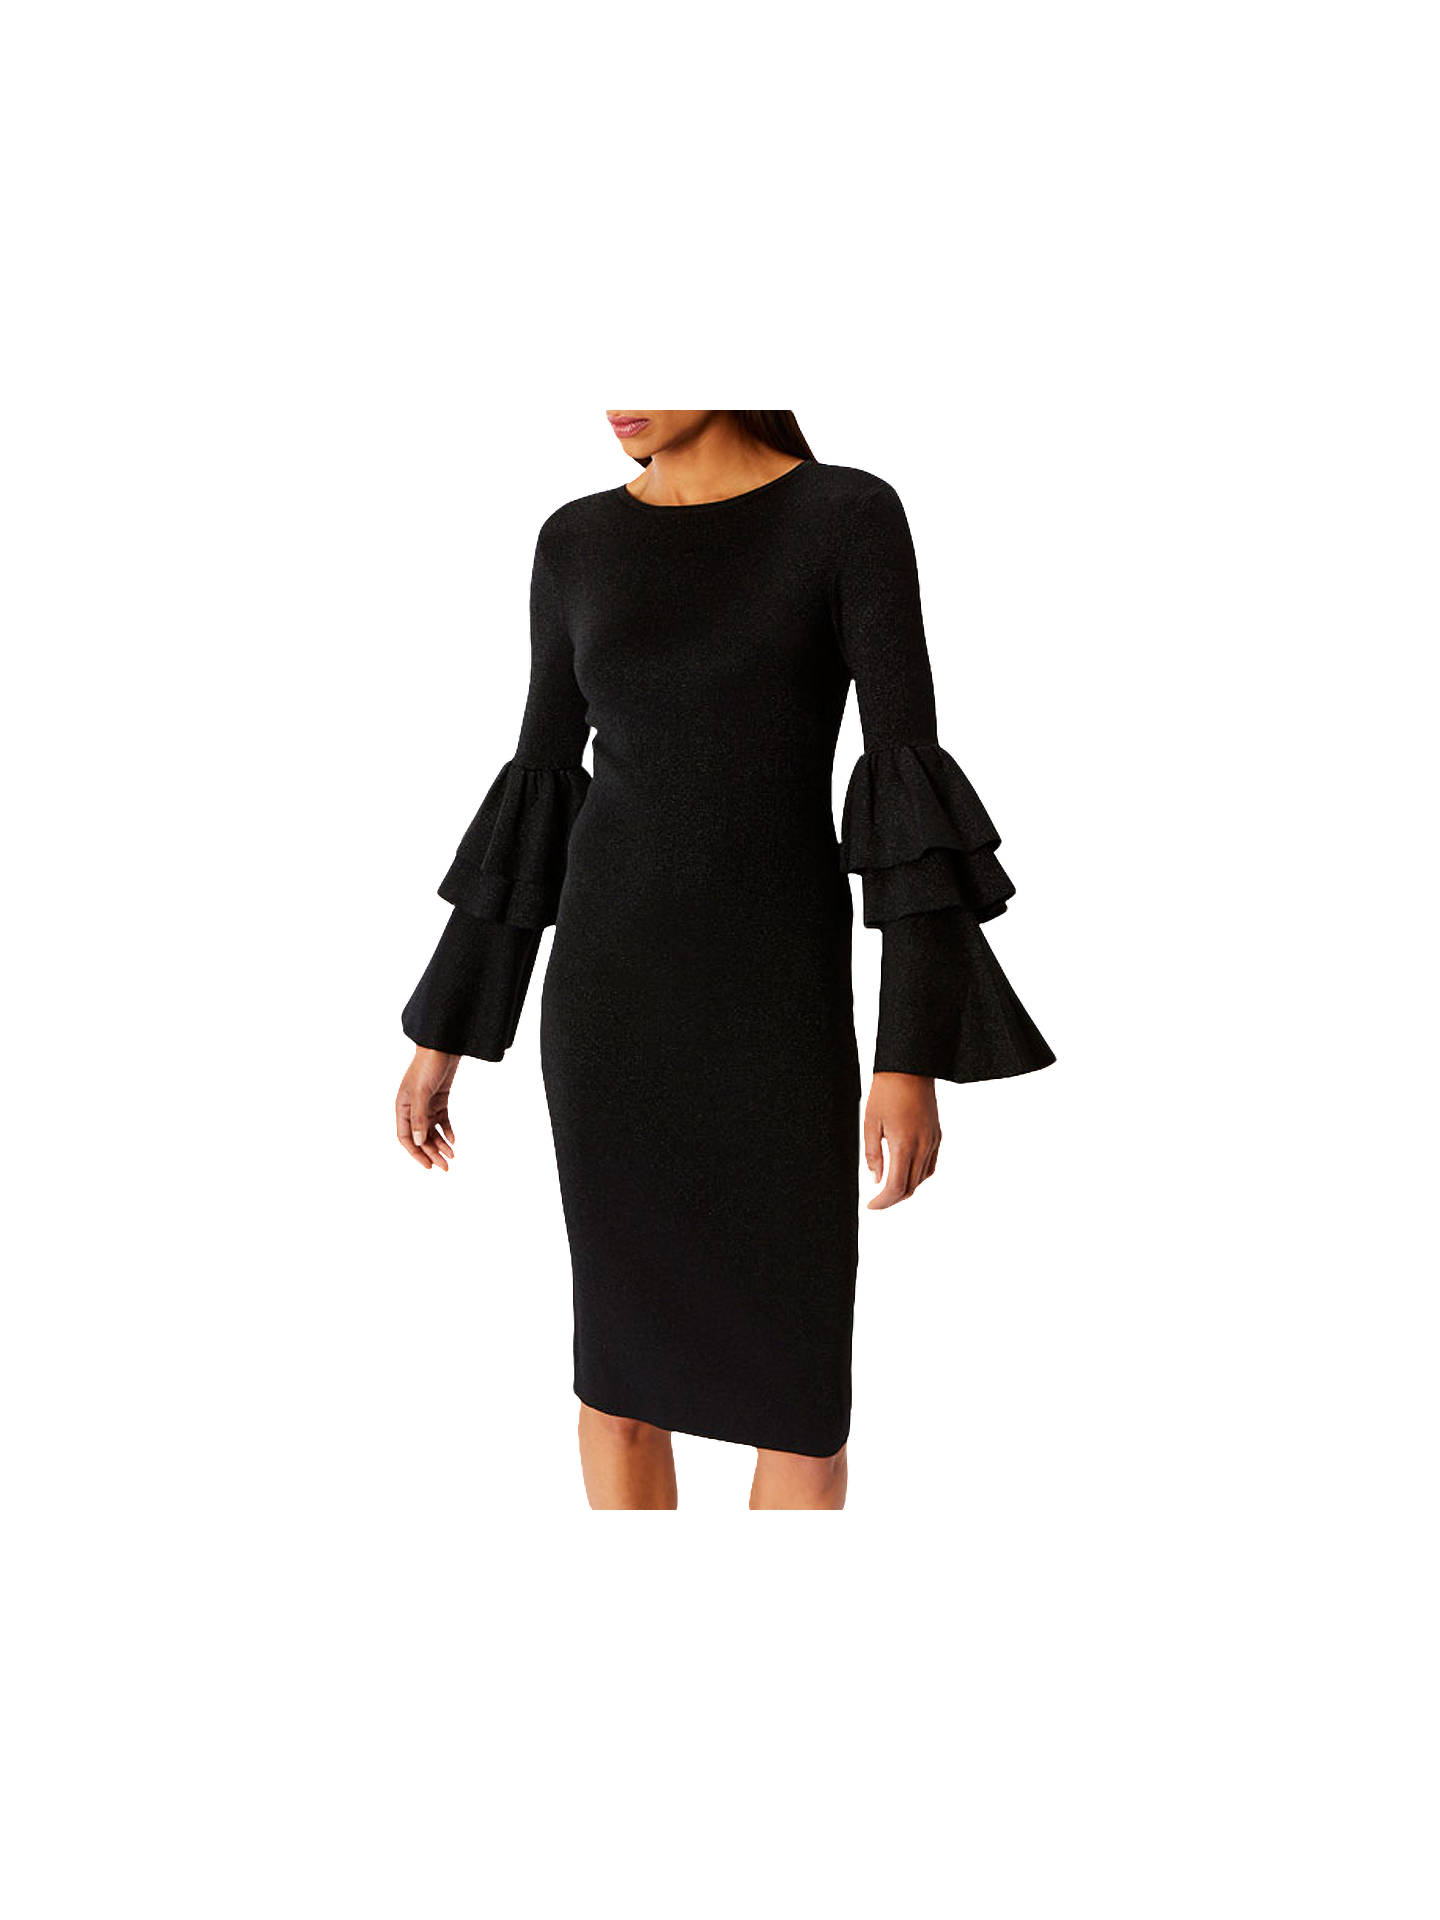 BuyCoast Alessa Sparkle Knit Dress, Black, 6 Online at johnlewis.com